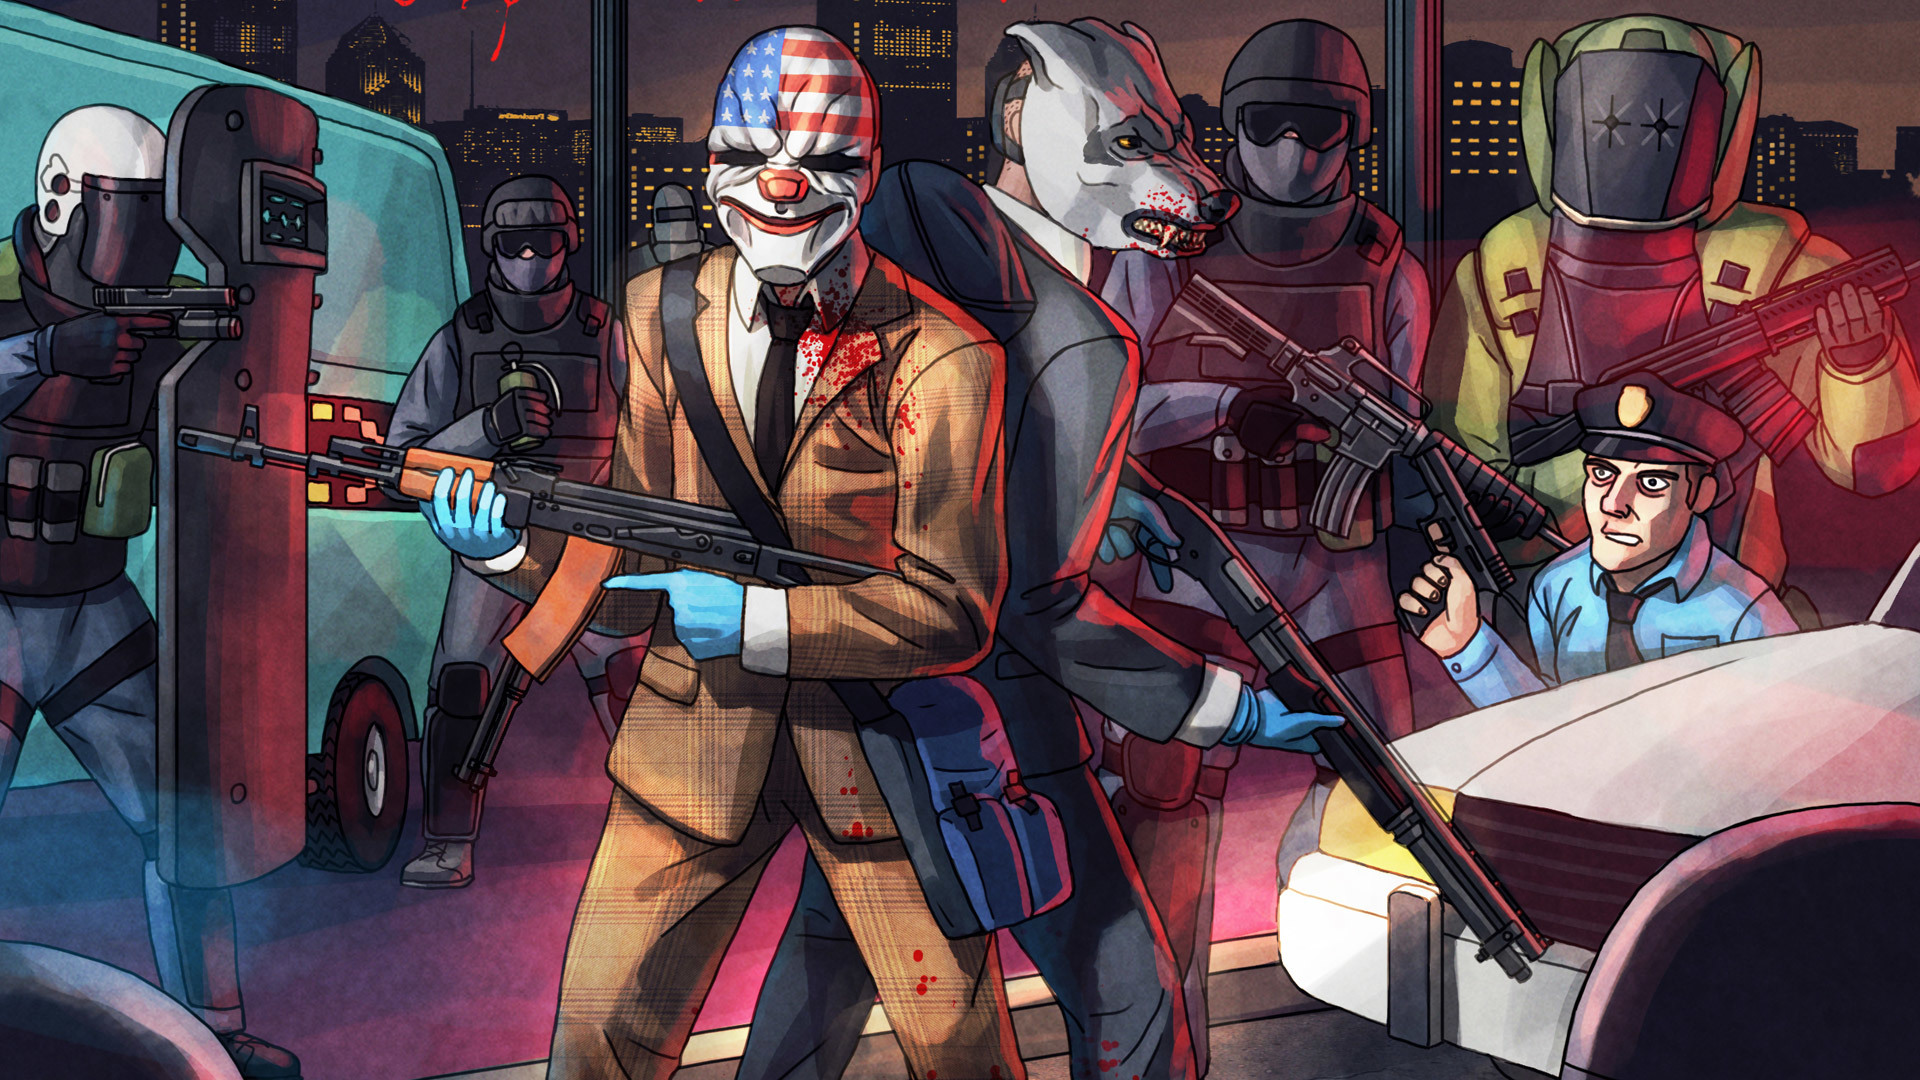 Payday 2 Dallas And Wolf Wallpaper Hd Games 4k Wallpapers